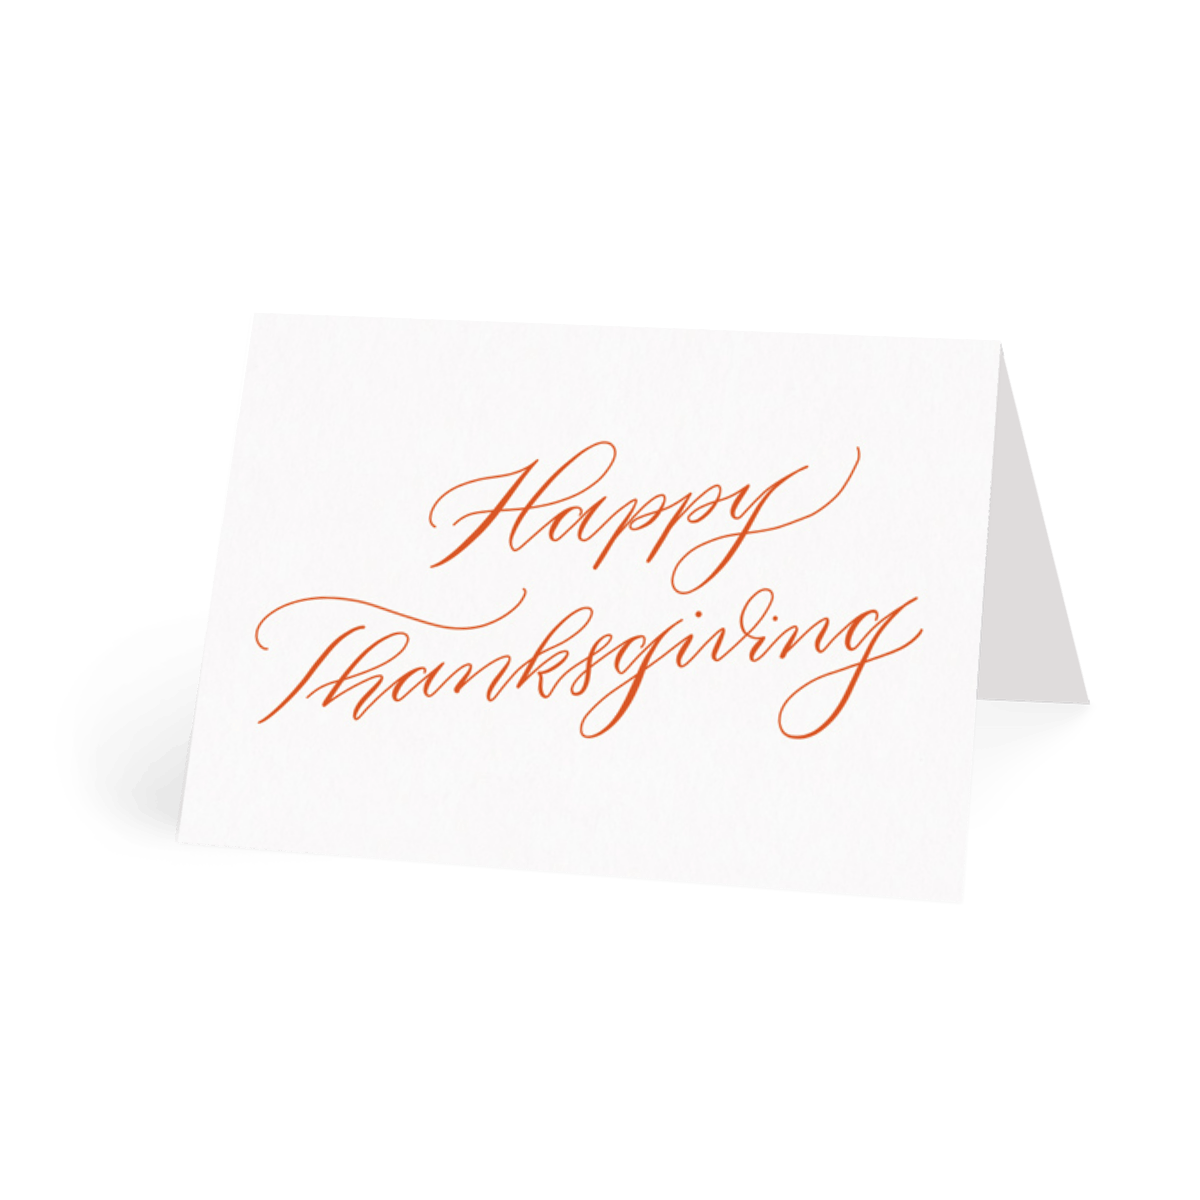 Https%3a%2f%2fwww.papier.com%2fproduct image%2f50657%2f14%2fhappy thanksgiving calligraphy 12405 front 1543228078.png?ixlib=rb 1.1